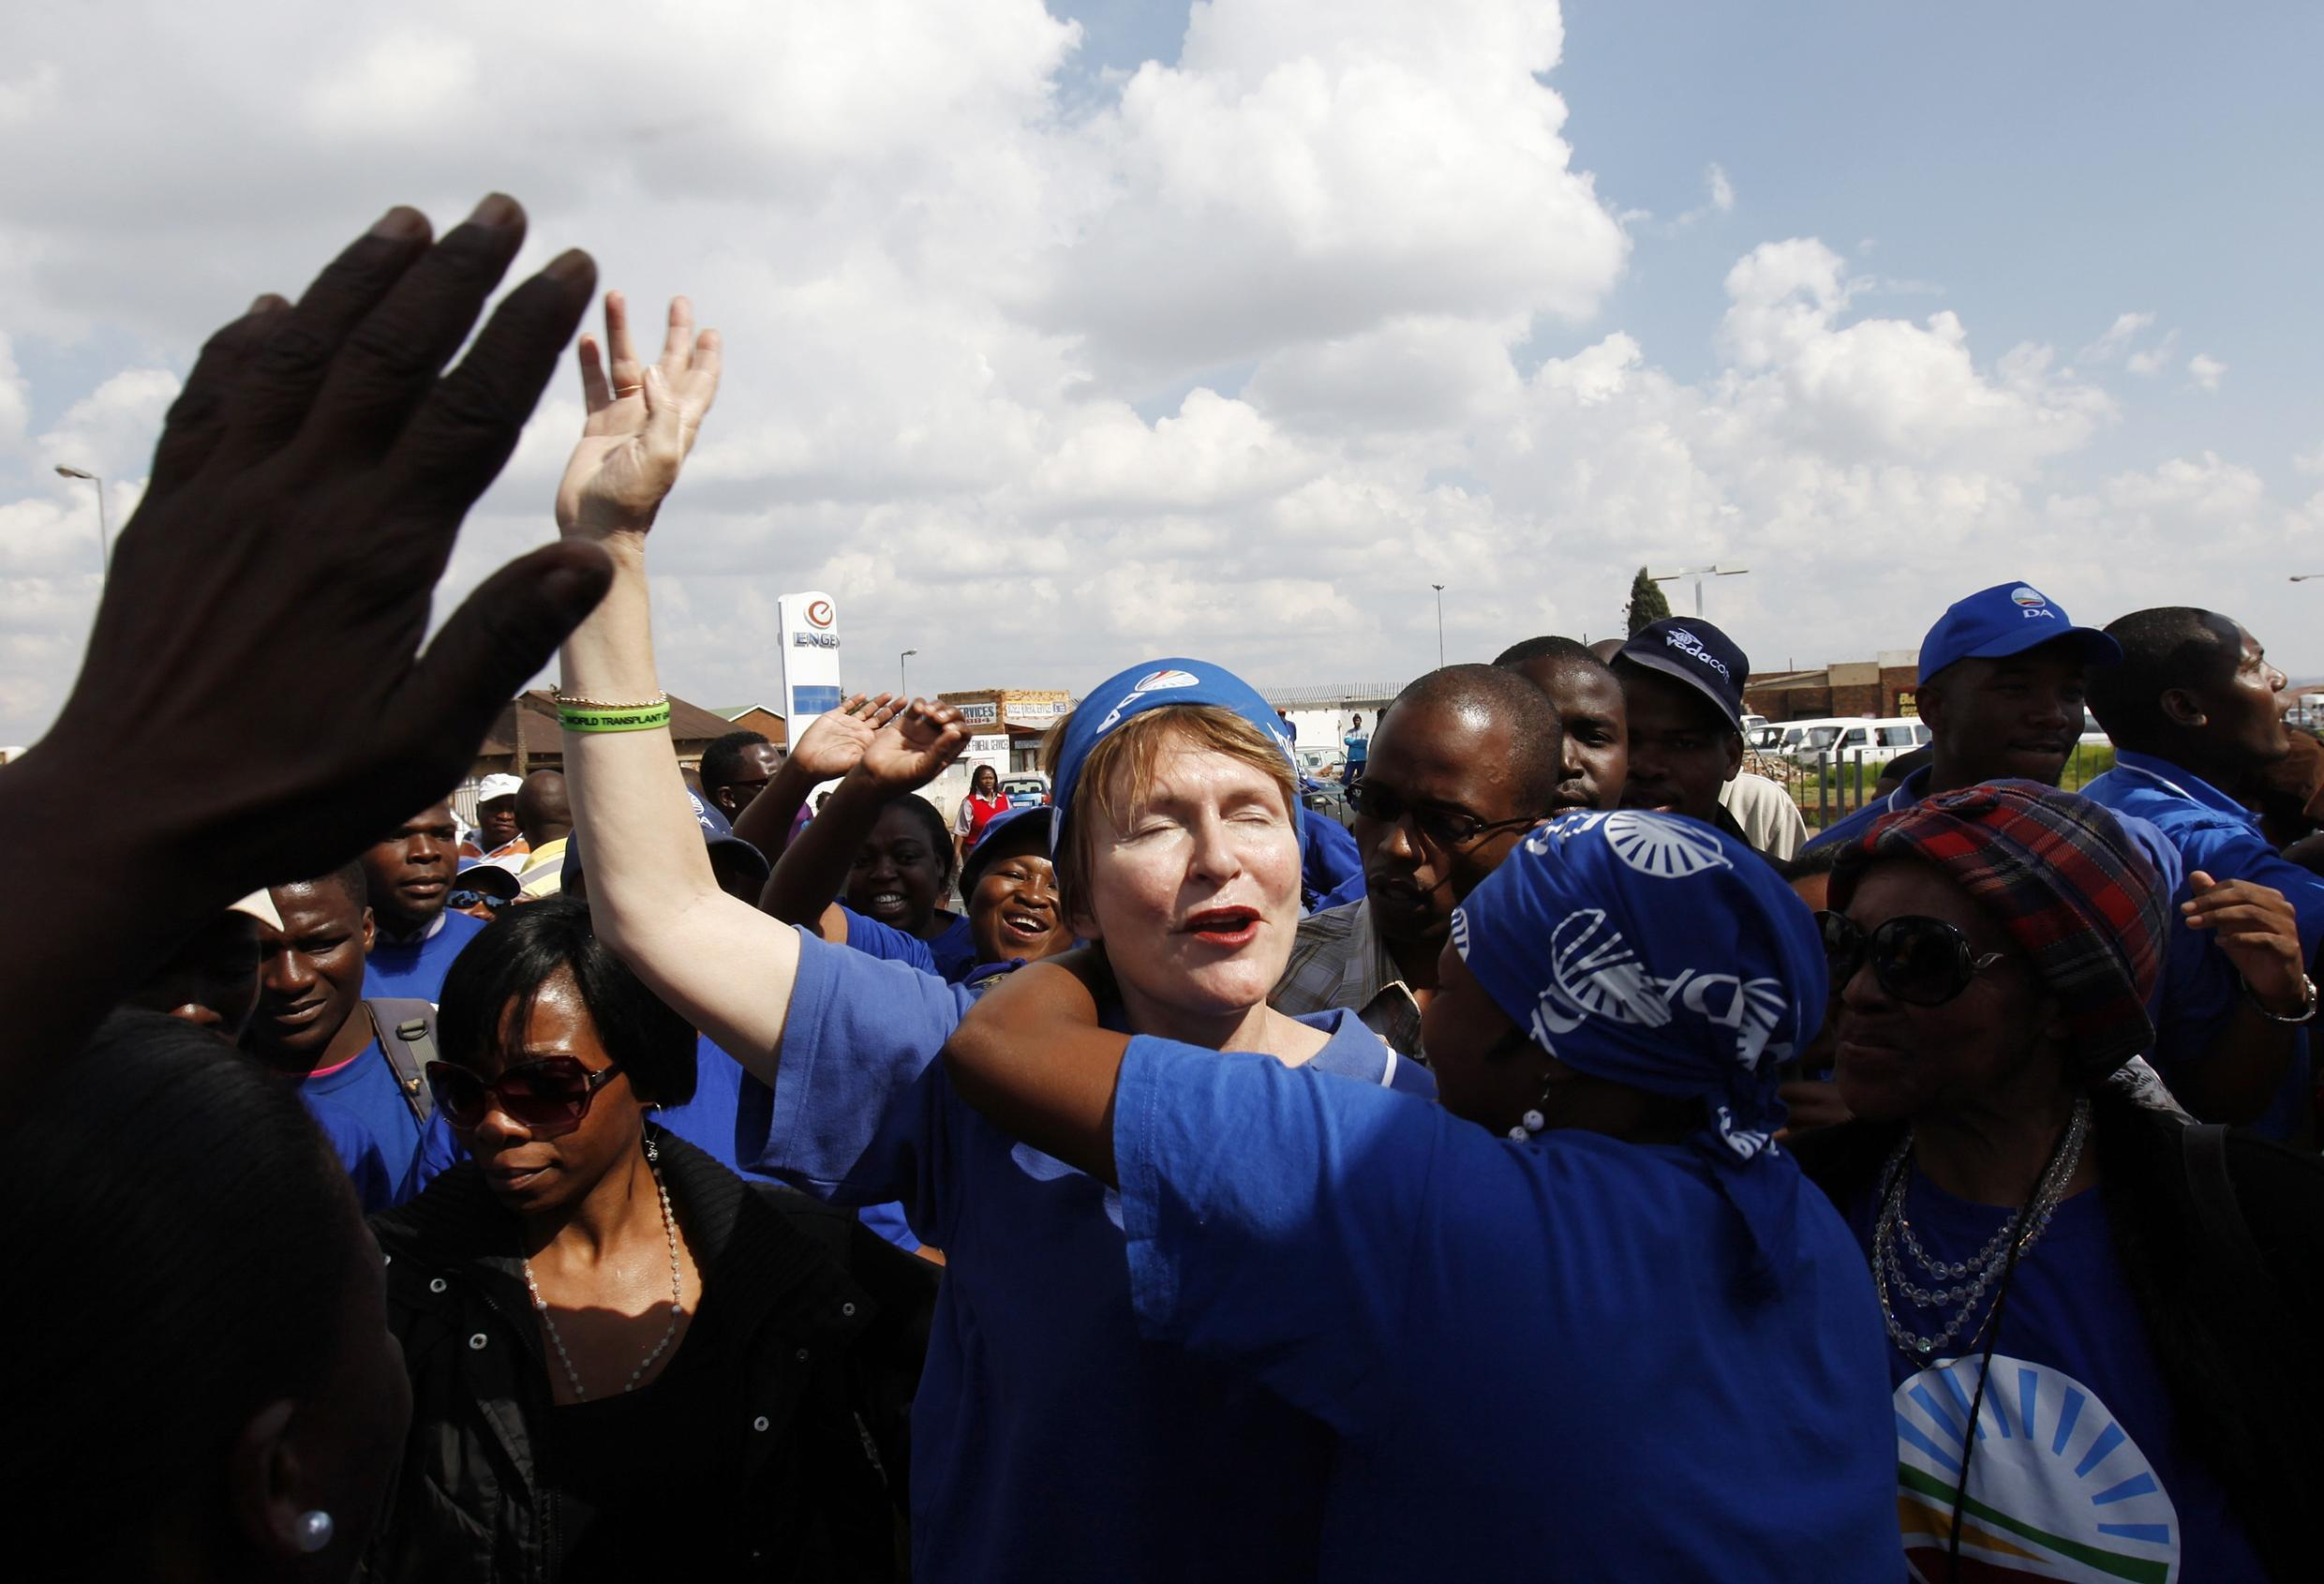 Democratic Alliance leader Helen Zille on a visit to Soweto